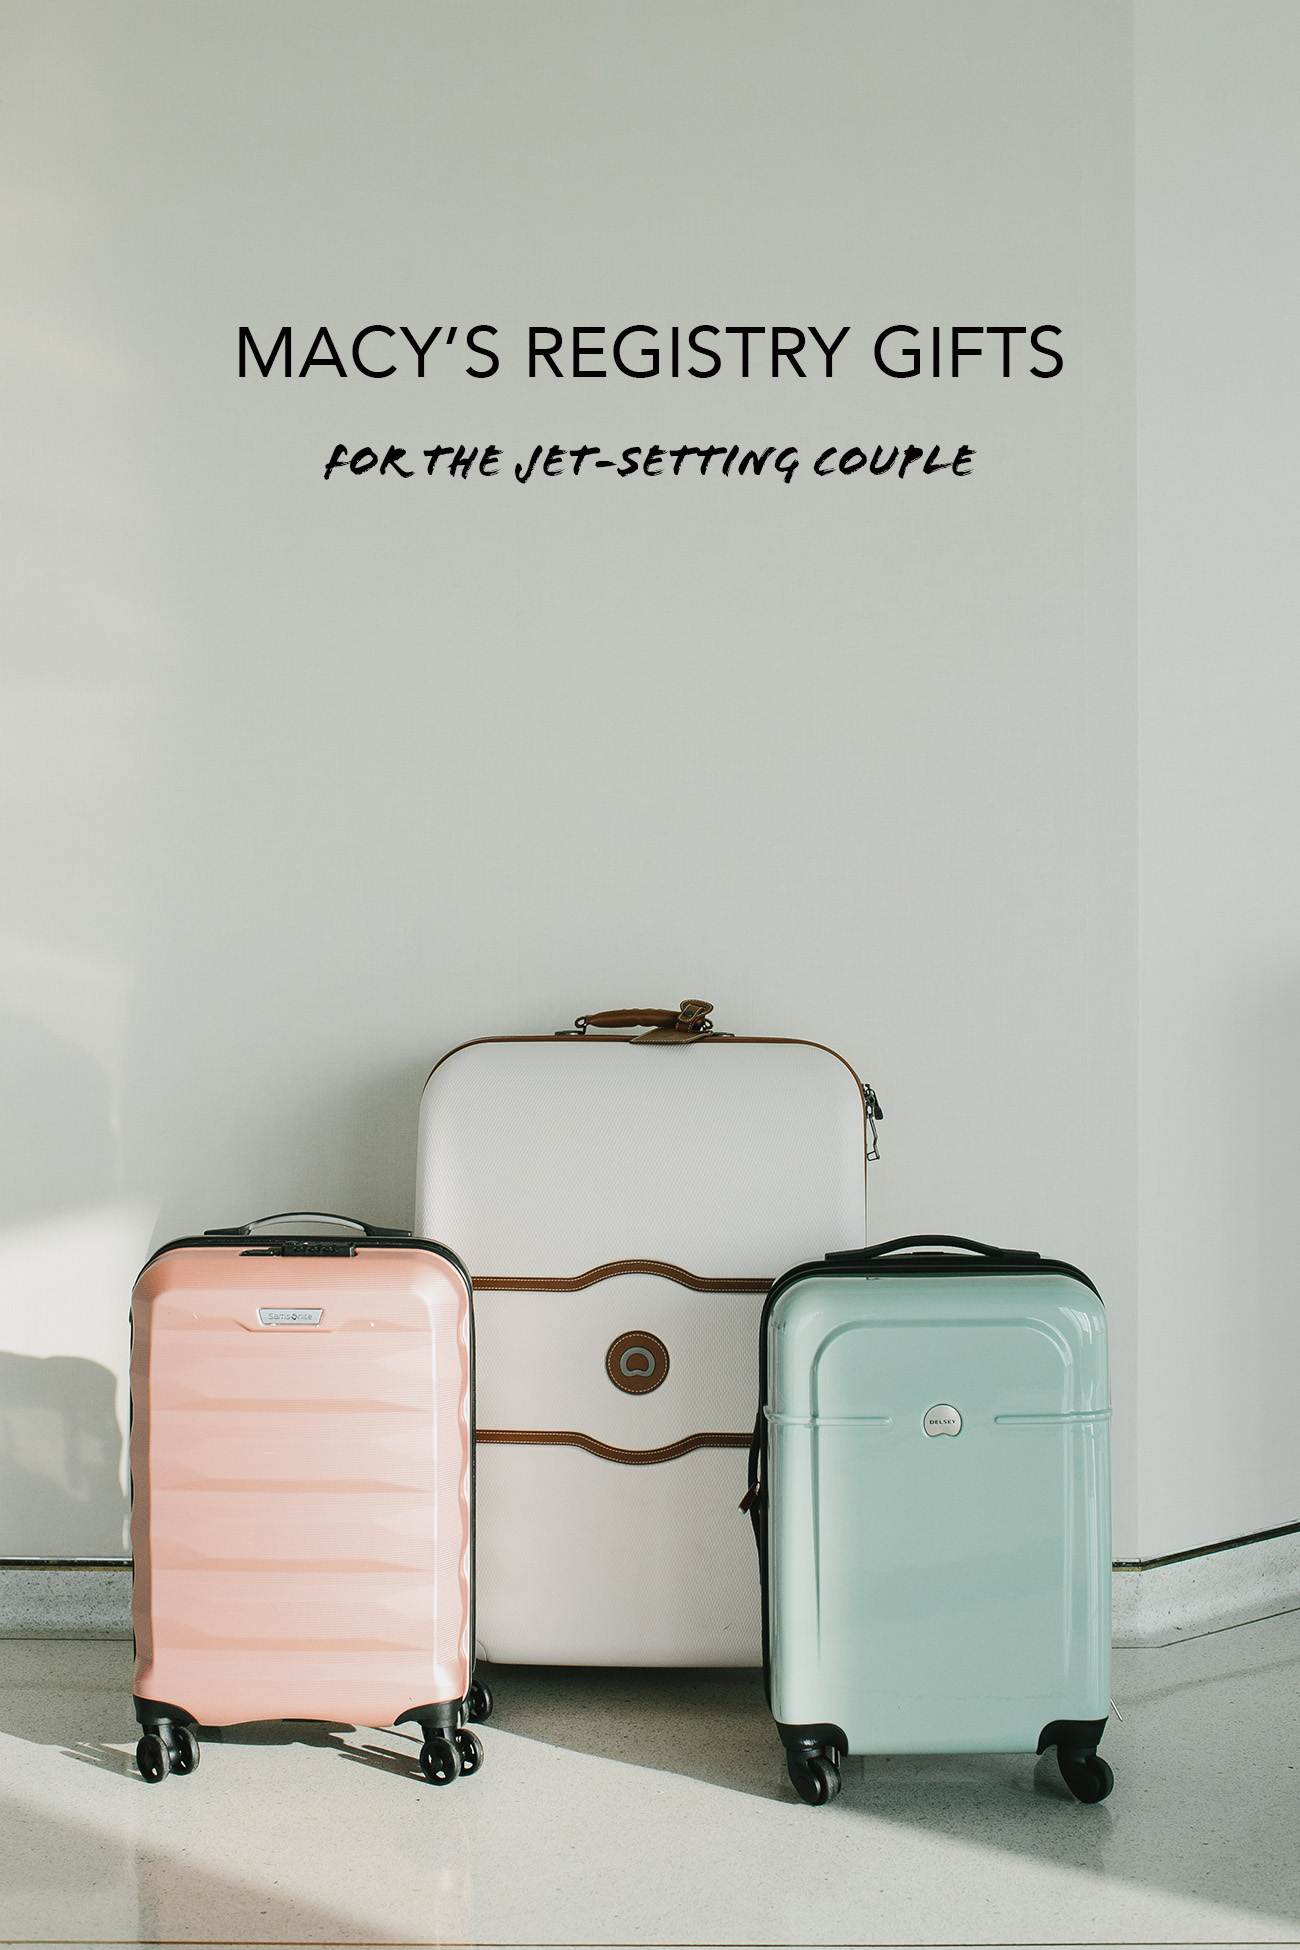 Macys Registry Gifts for the Jet-Setting Couple